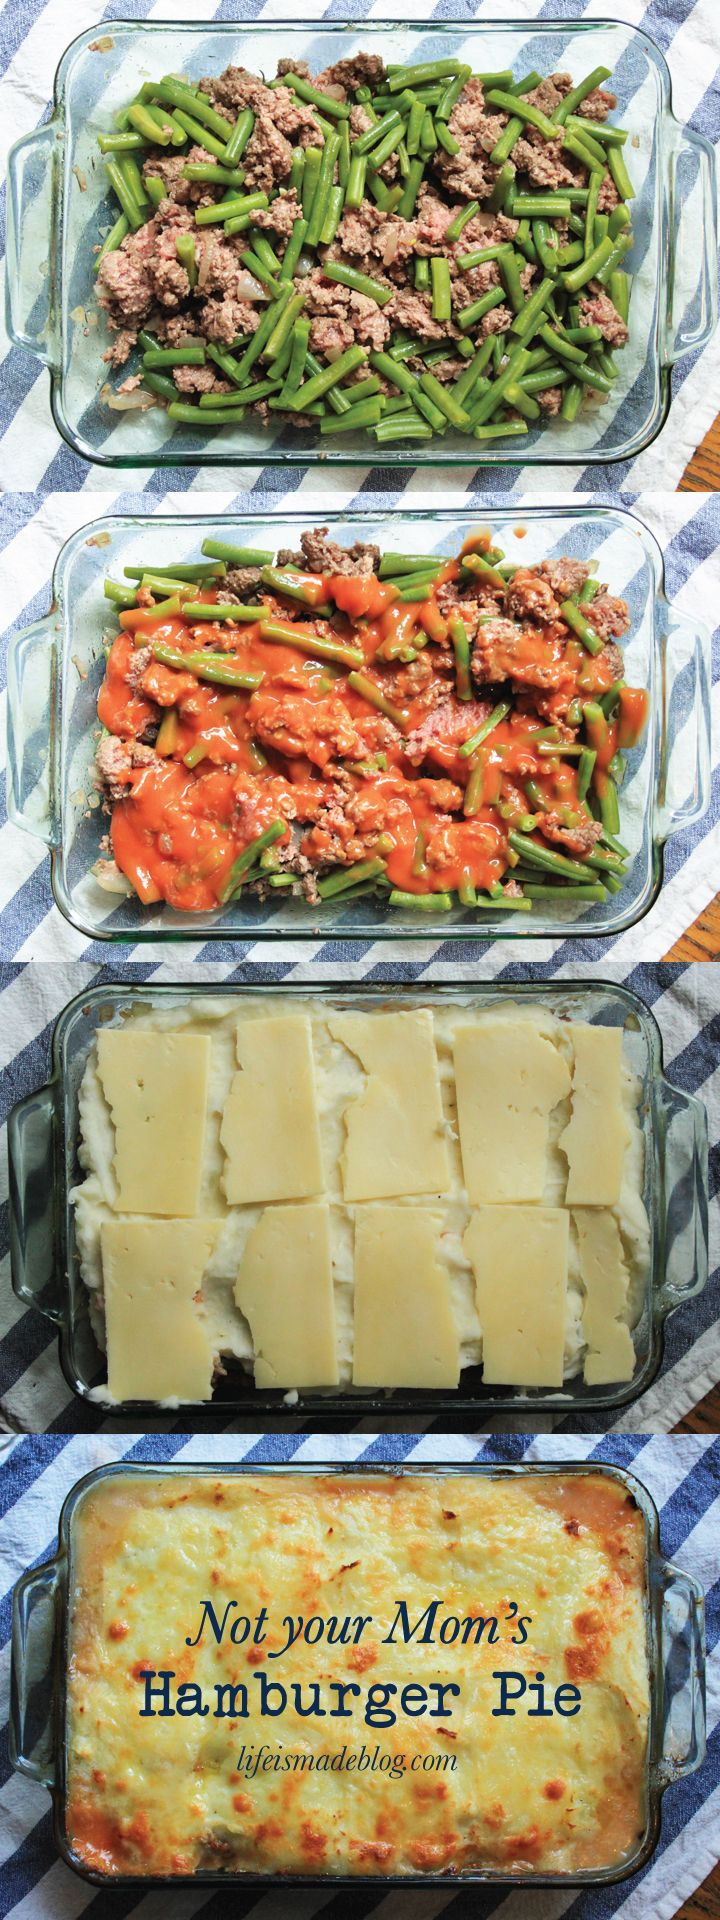 Not Your Mom's Hamburger Pie, with ground beef, green beans, onion, tomato sauce, mashed potatoes, cheese